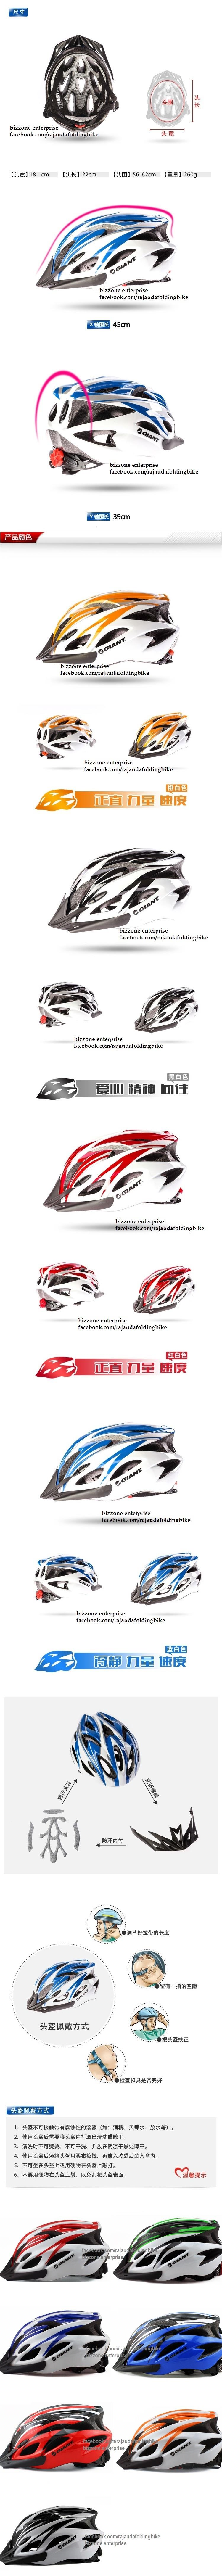 GIANT TYPE Cycling sports Bicycle Bike MTB Adjust Helmet